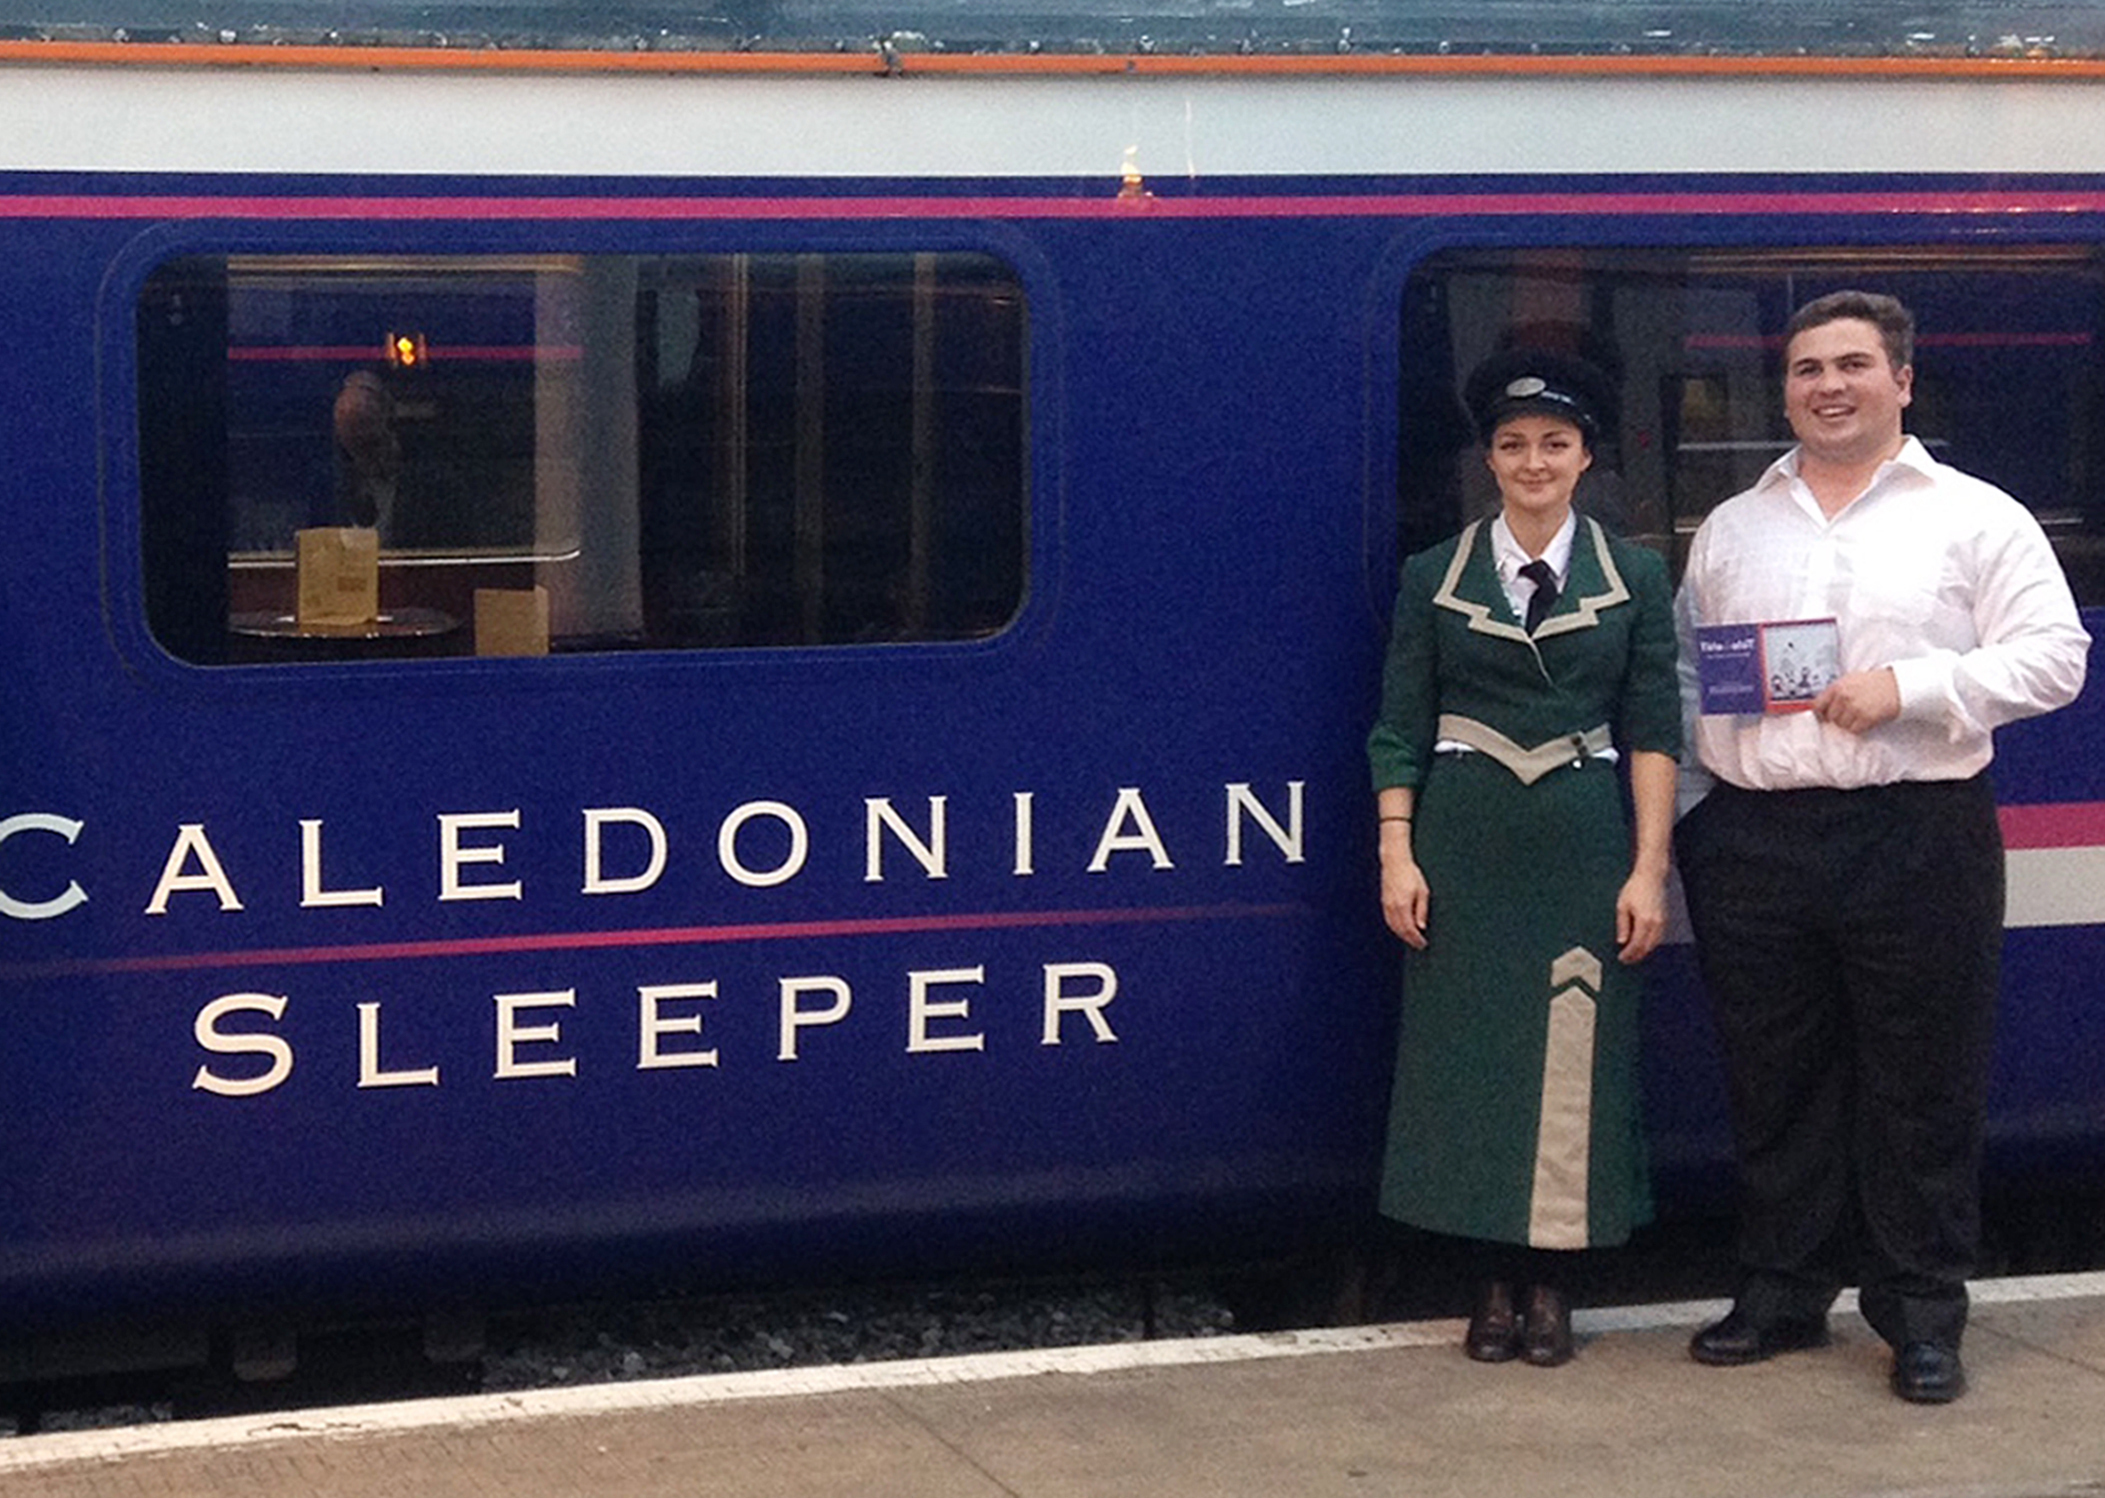 Robert Lewis and Zosia Jagodzinska before performing Belongings, an opera staged by Scotland's soundfestival and London's of Tete a Tete: The Opera Festival on the sleeper service between Aberdeen and London. (Belongings/PA Wire)